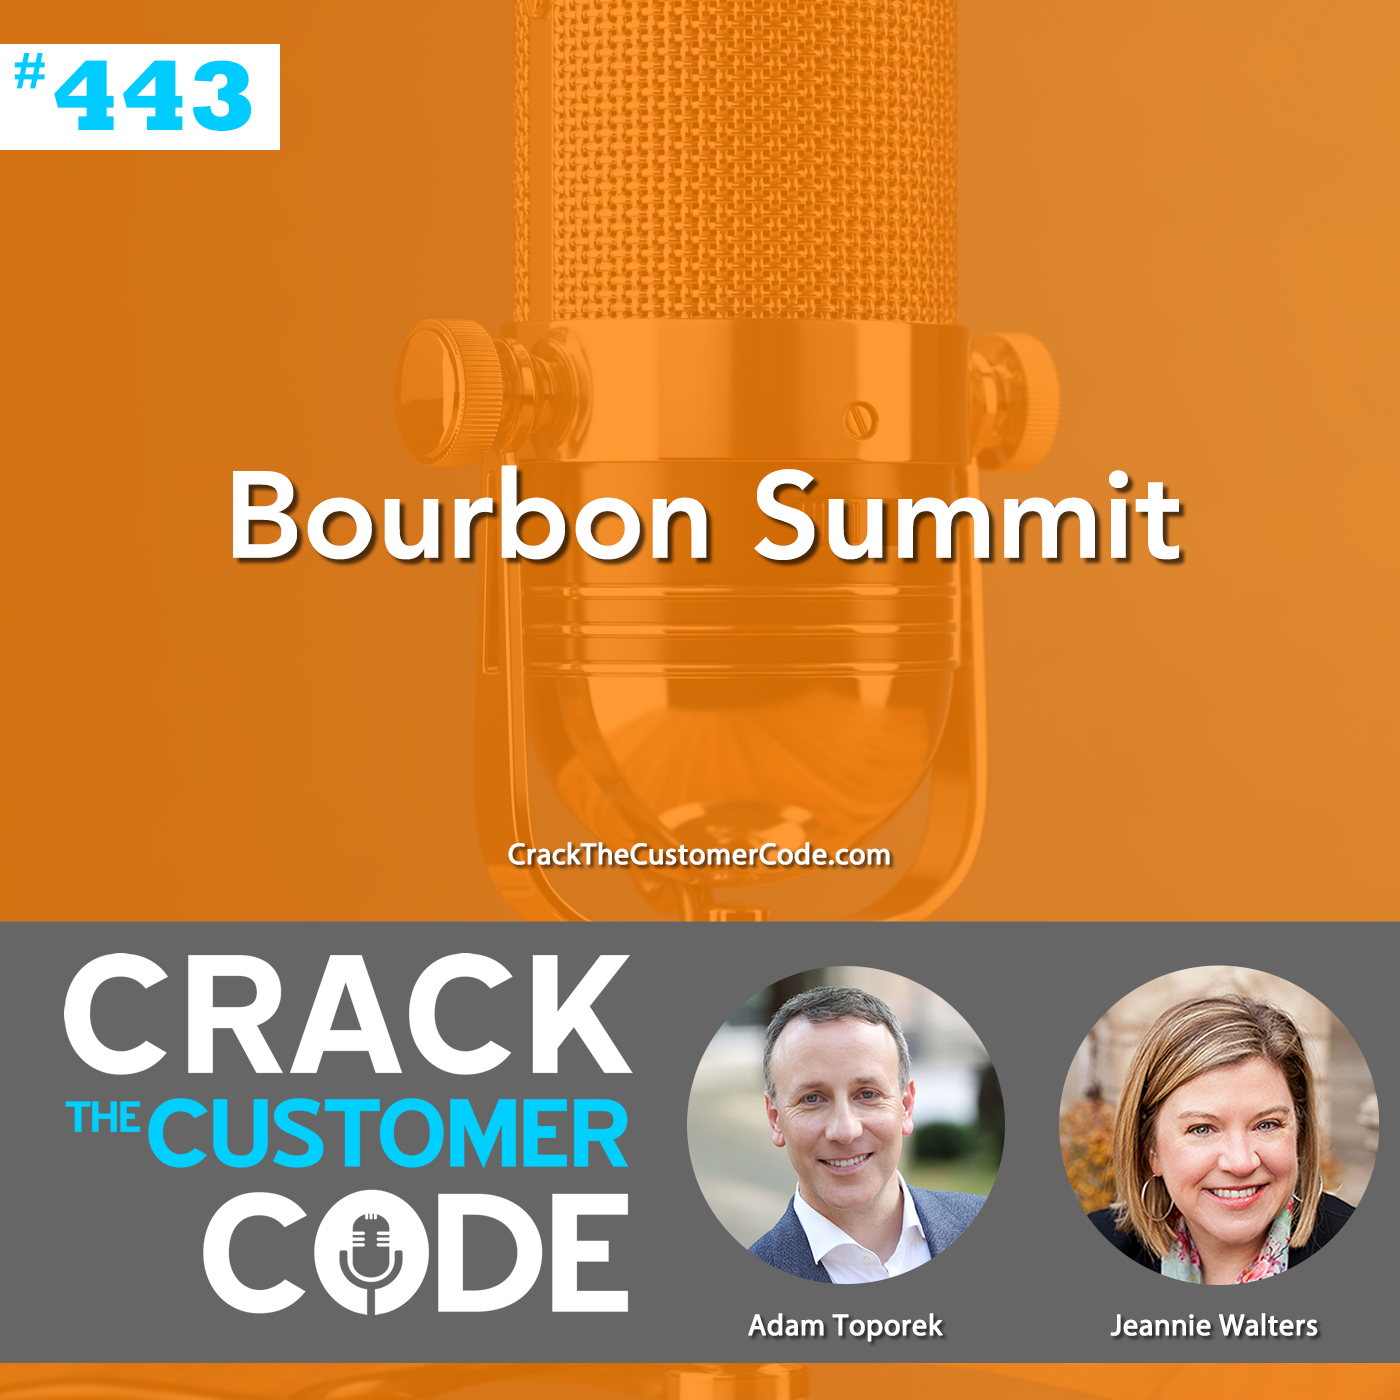 443: Bourbon Summit #4